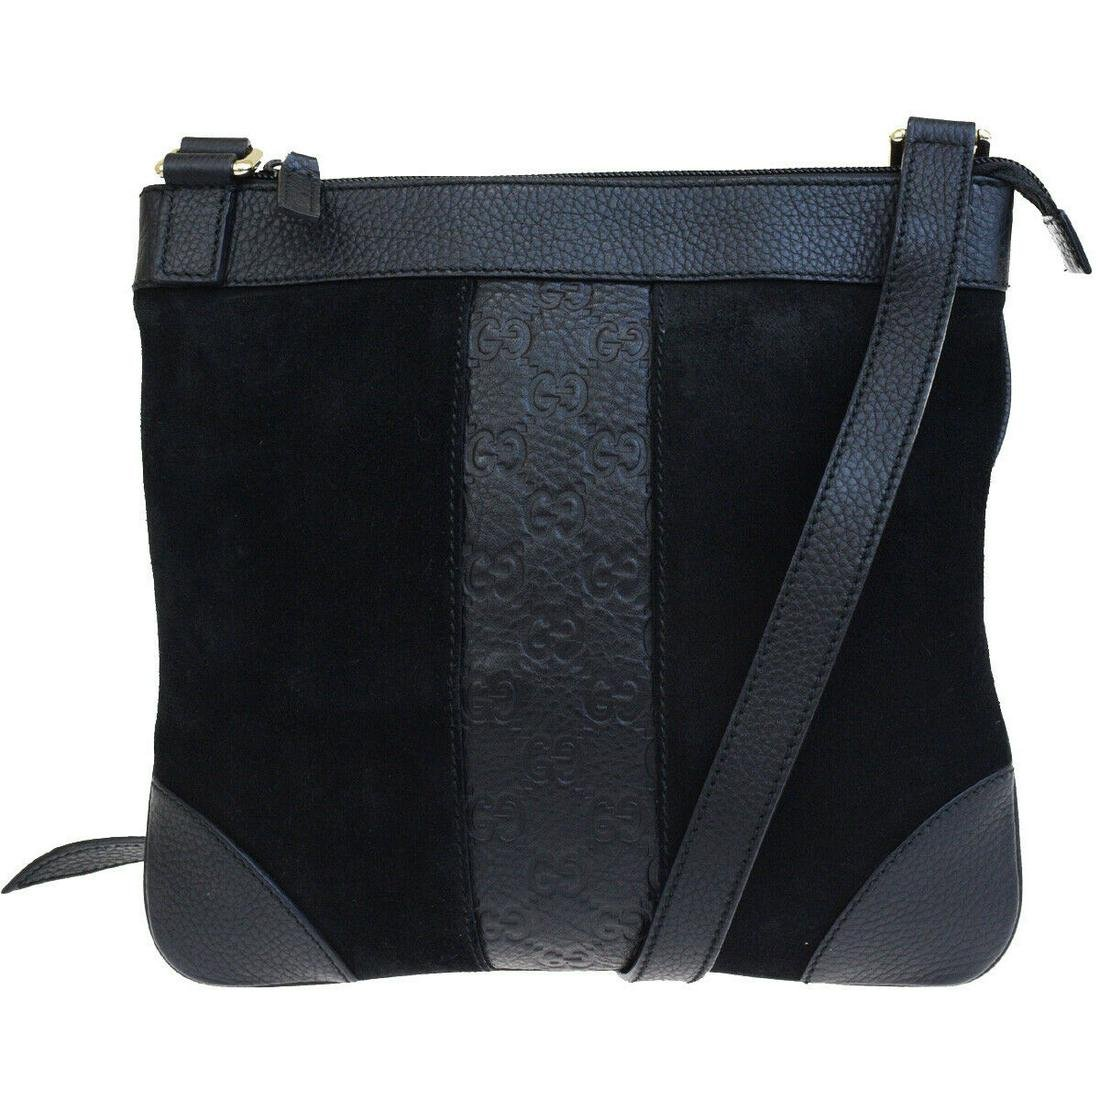 Authentic GUCCI Leather, Suede Skin Leather Shoulder